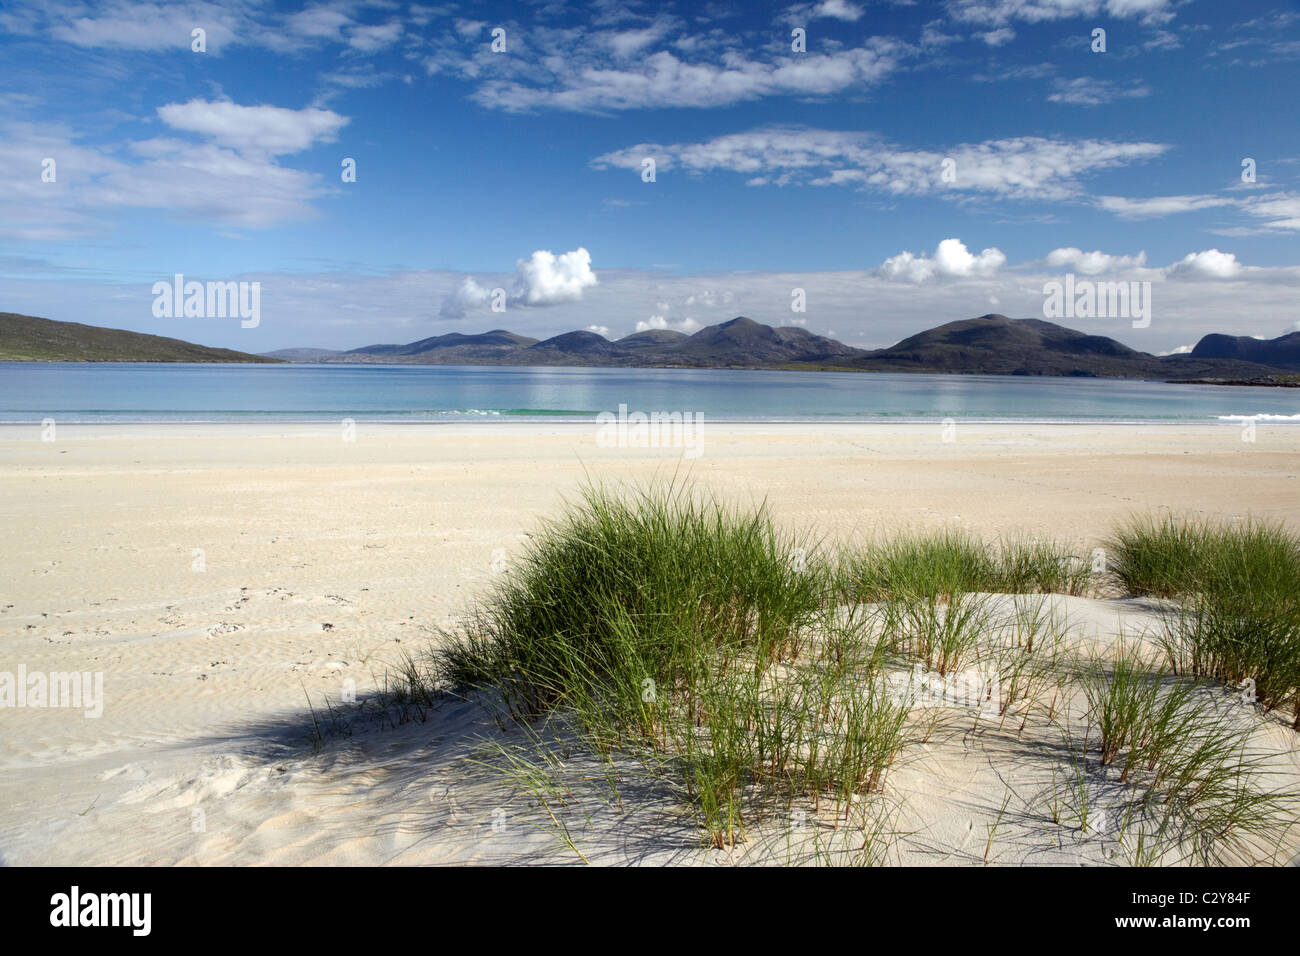 Deserted beach at Luskentyre on the Scottish Island of Harris in the outer Henrides - Stock Image